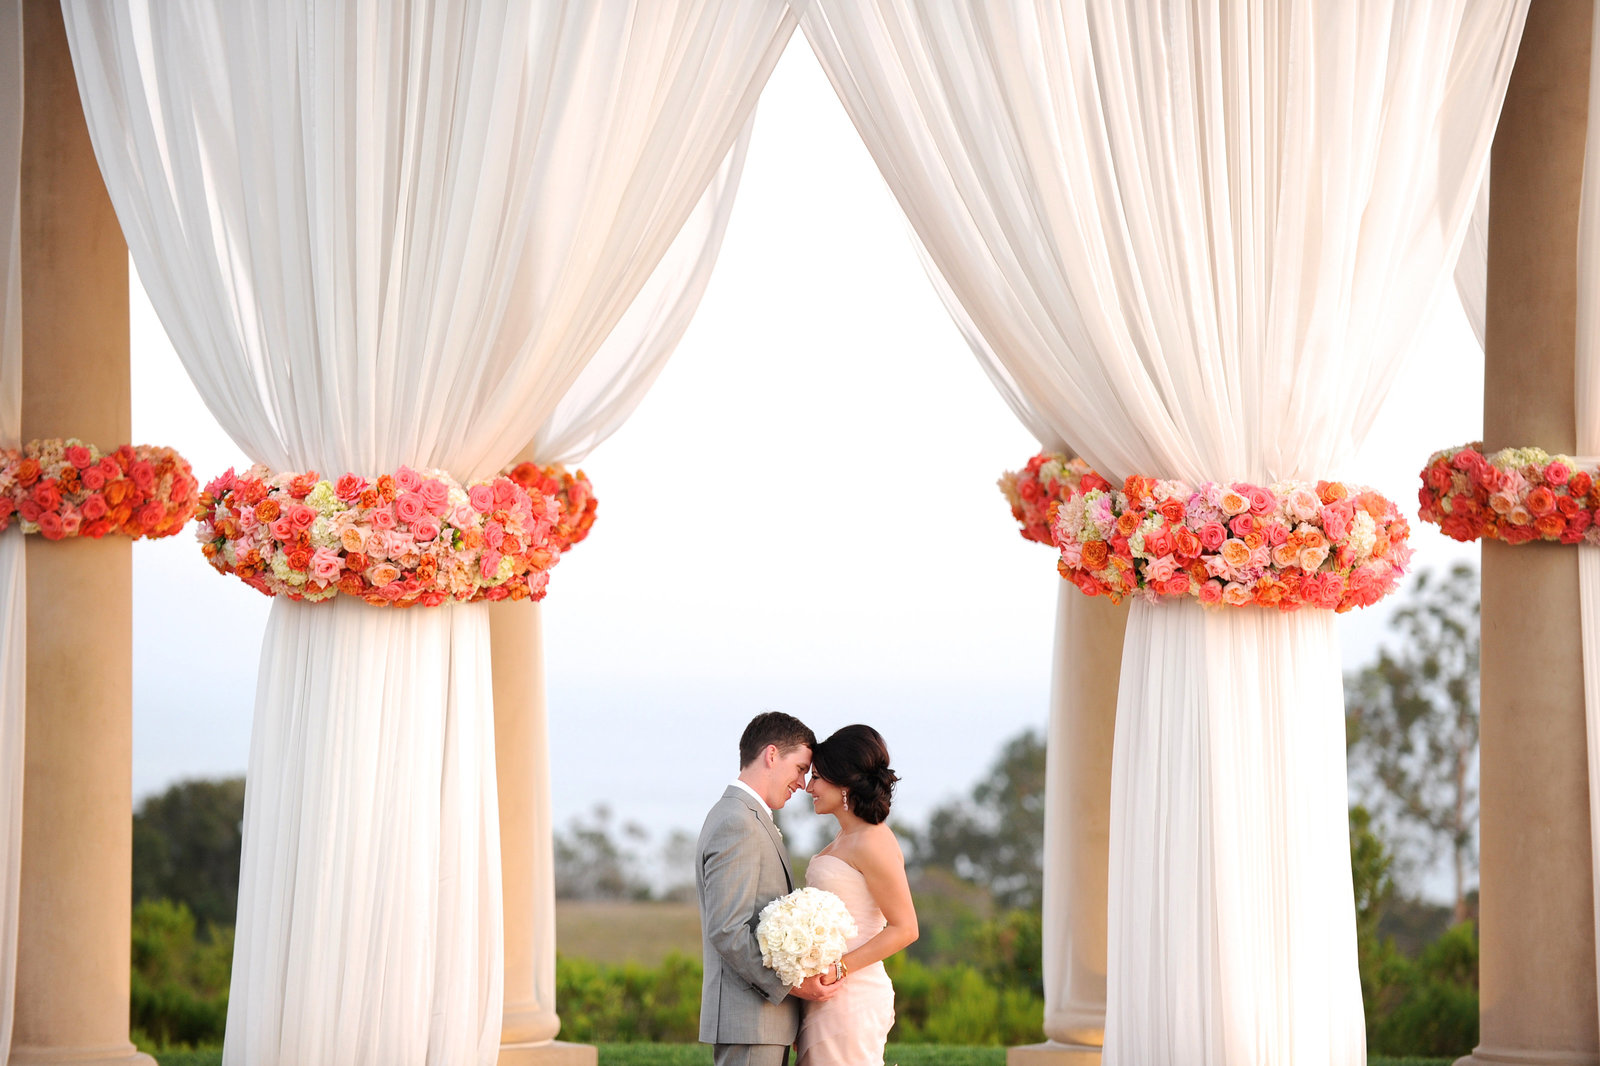 A beautiful wedding in Newport Coast at Pelican Hill Resort